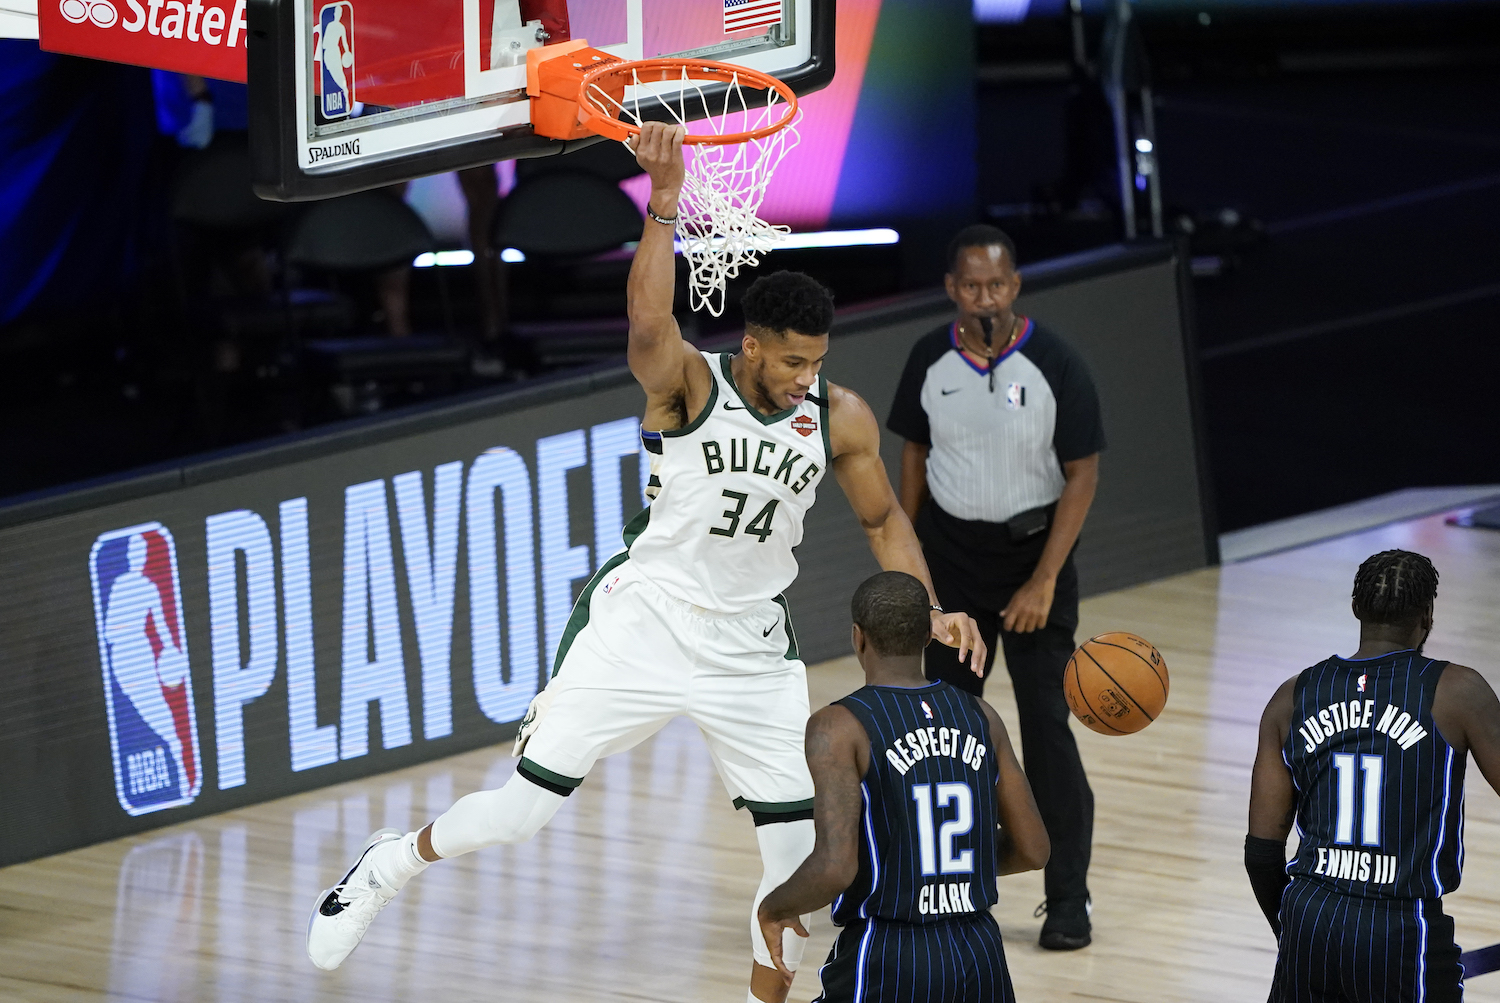 Giannis Antetokounmpo has been vacationing in Europe while the rest of the NBA speculates on his future with the Milwaukee Bucks.